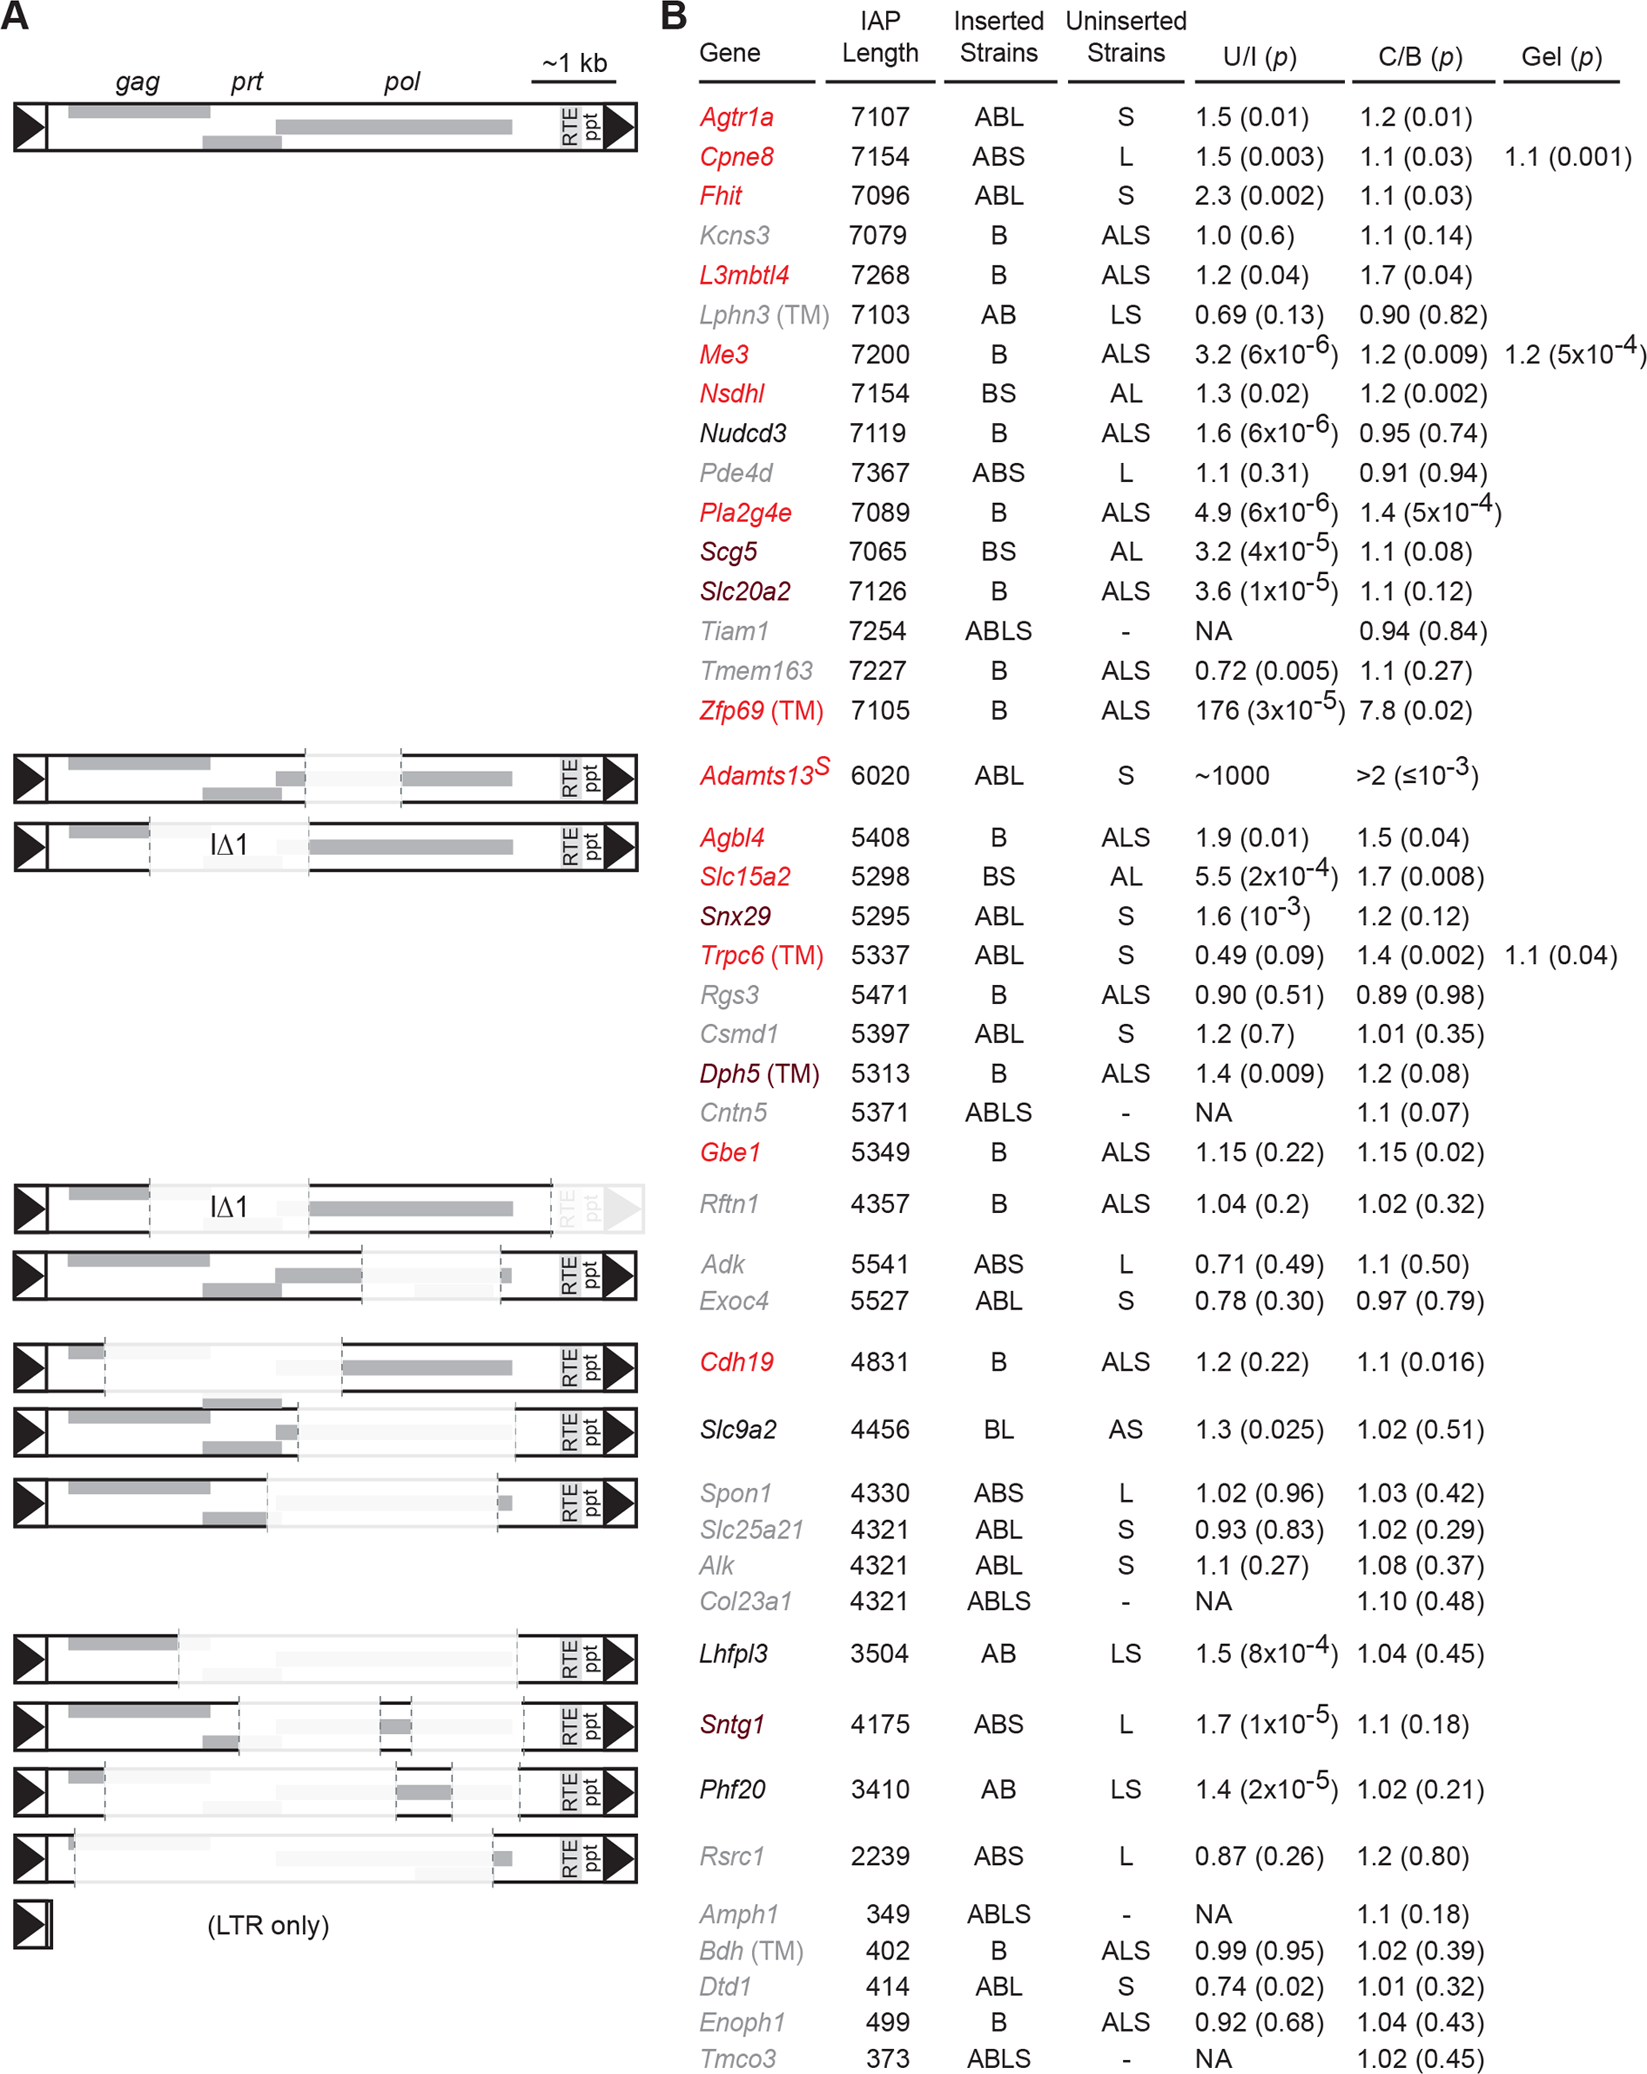 <i>Nxf1</i><sup><i>CAST</i></sup> congenic allele suppresses a diversity of IAP elements in the B6 genome.